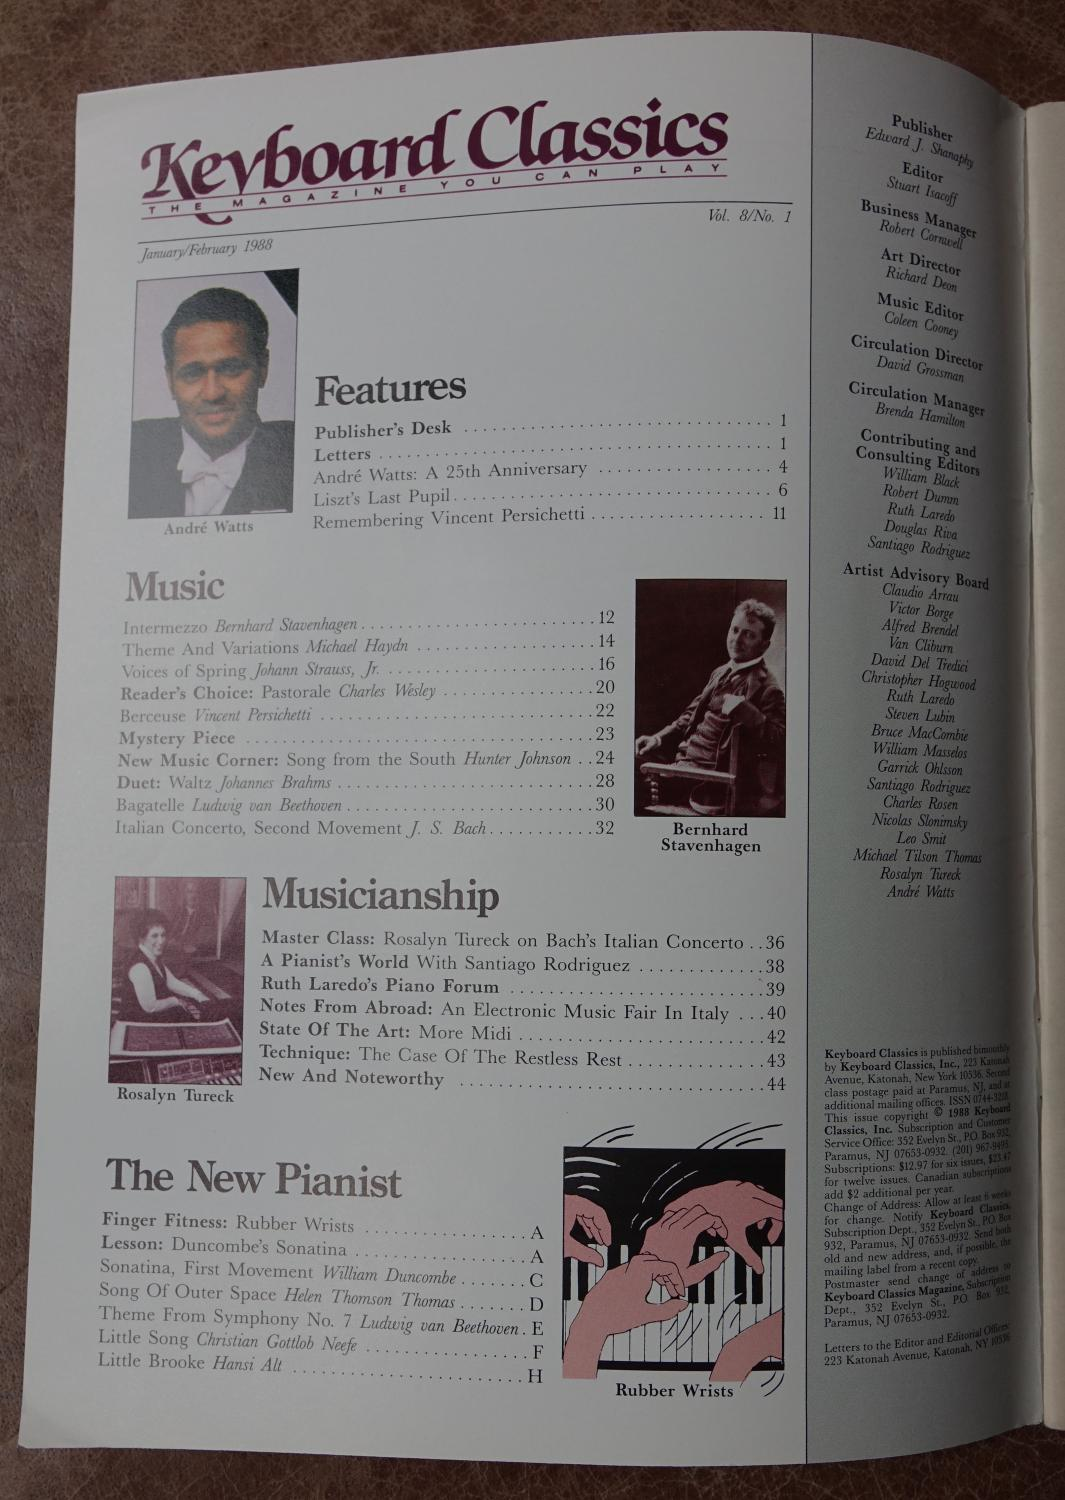 Keyboard Classics: The Magazine You Can Play